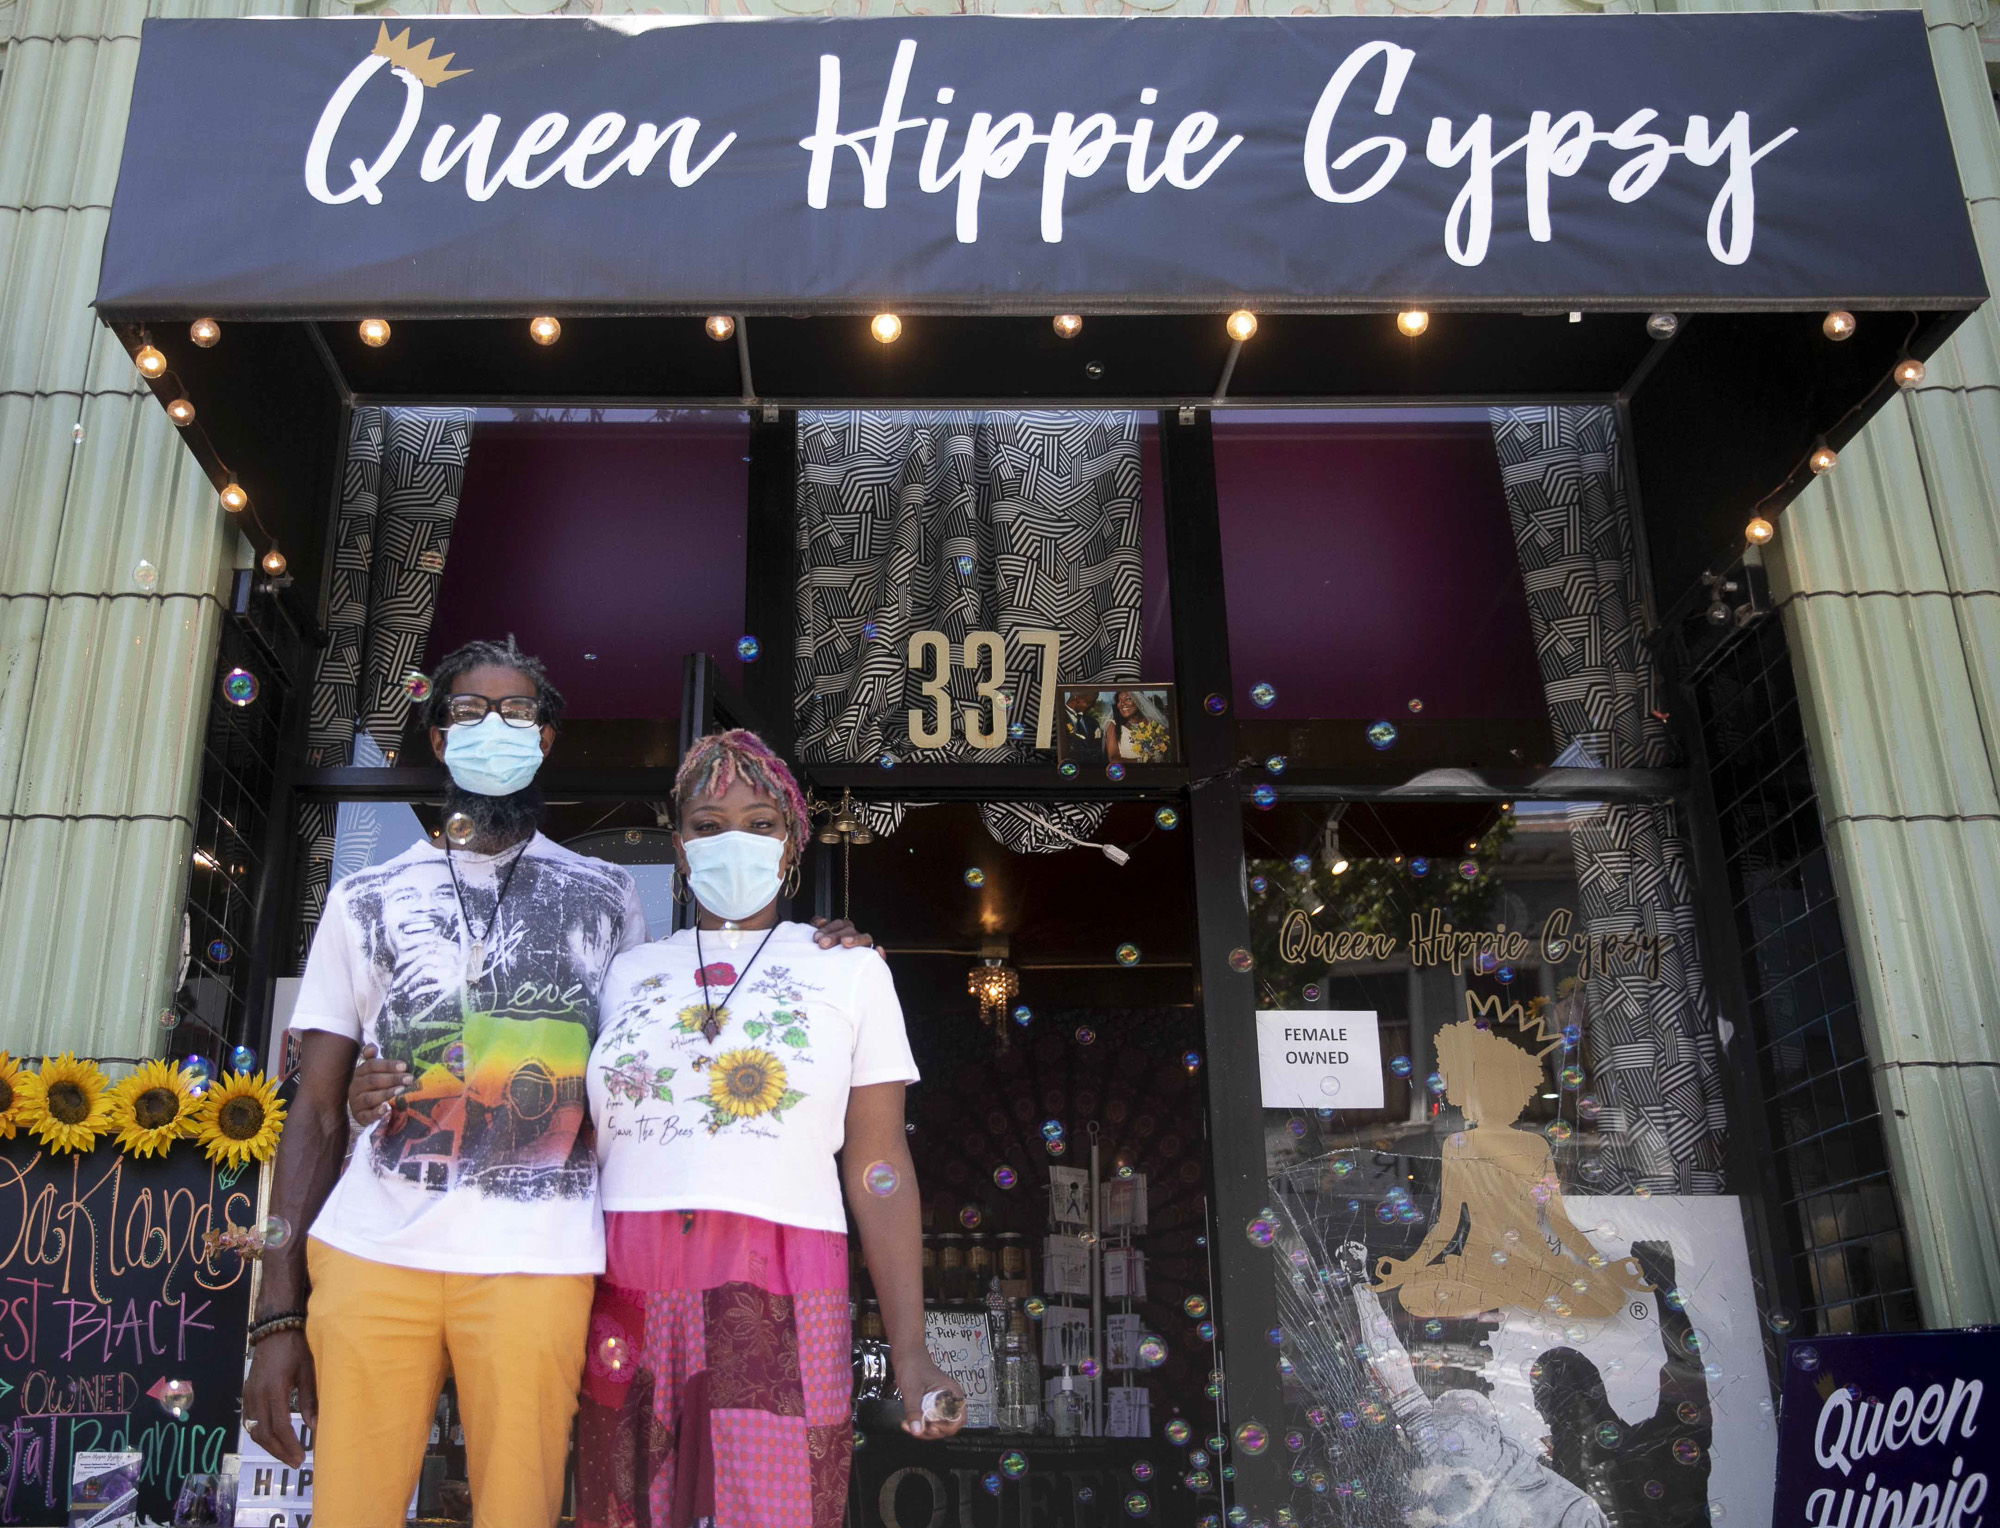 Kyrah Ayers, left, and his wife, Lilliannia Ayers, stand in front of her shop Queen Hippie Gypsy in downtown Oakland. The shop, which opened two years ago, was one of several on their block to be vandalized earlier this week during protests against the killing of George Floyd by police in Minneapolis. Photo by Anne Wernikoff for CalMatters